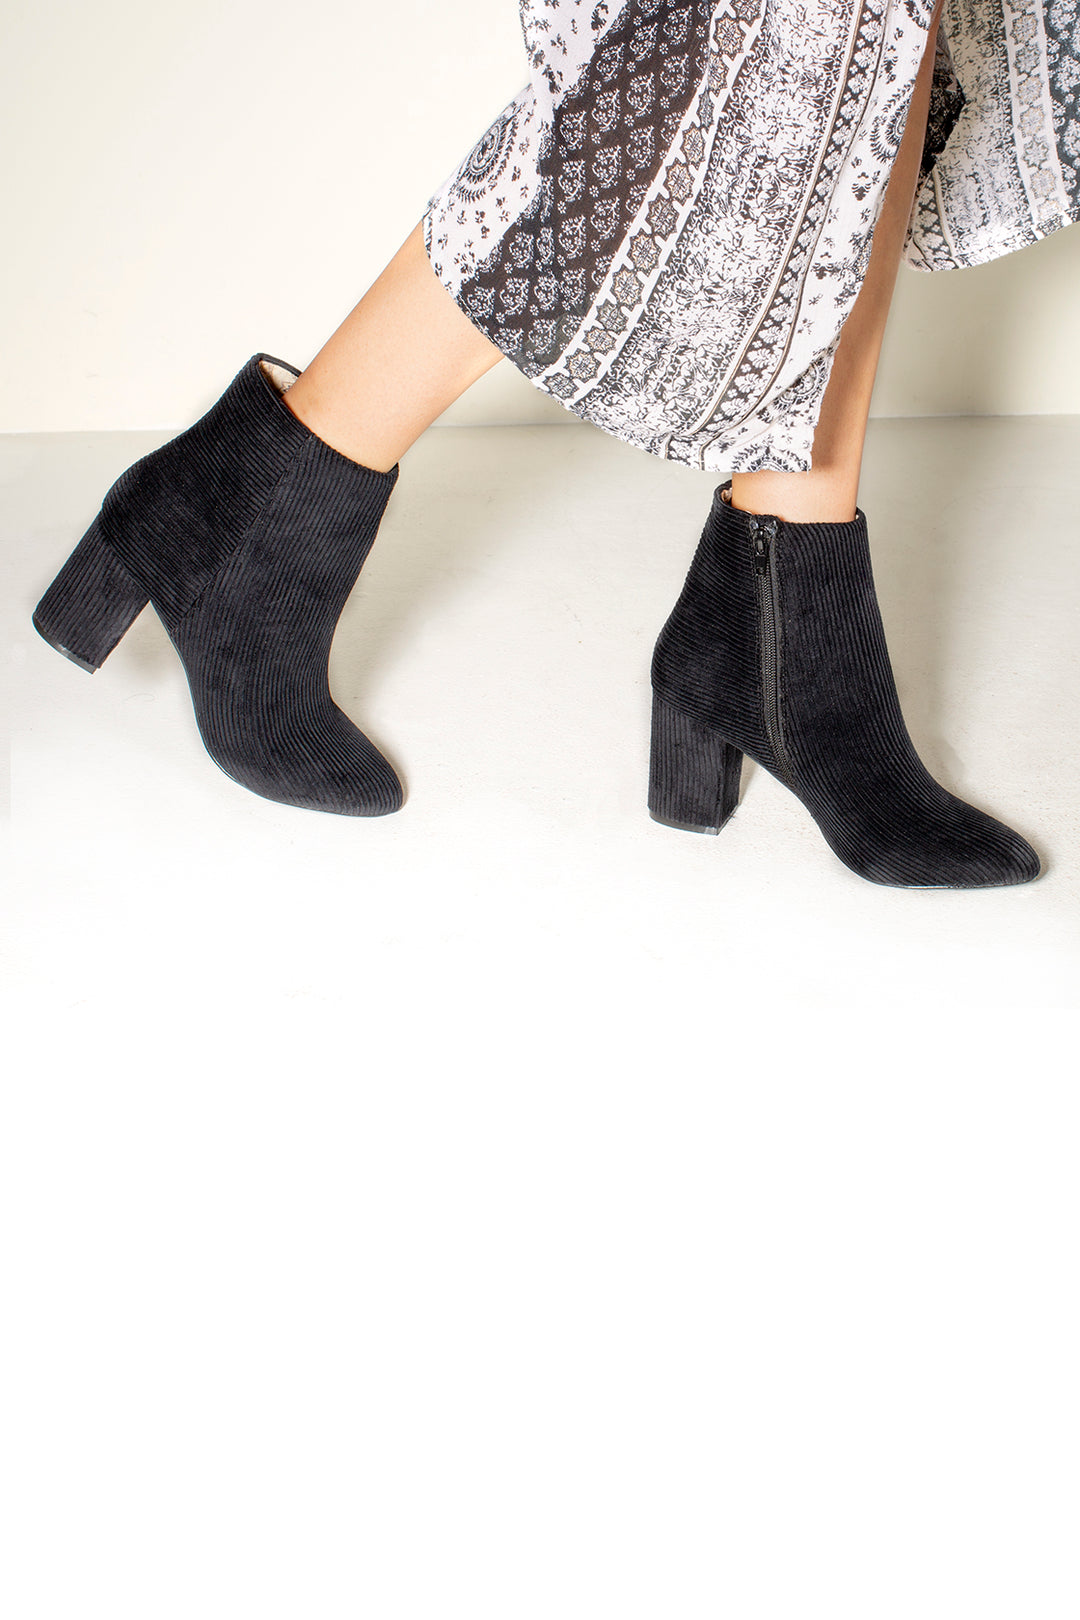 Andrea Corduroy Black Ankle Booties Master